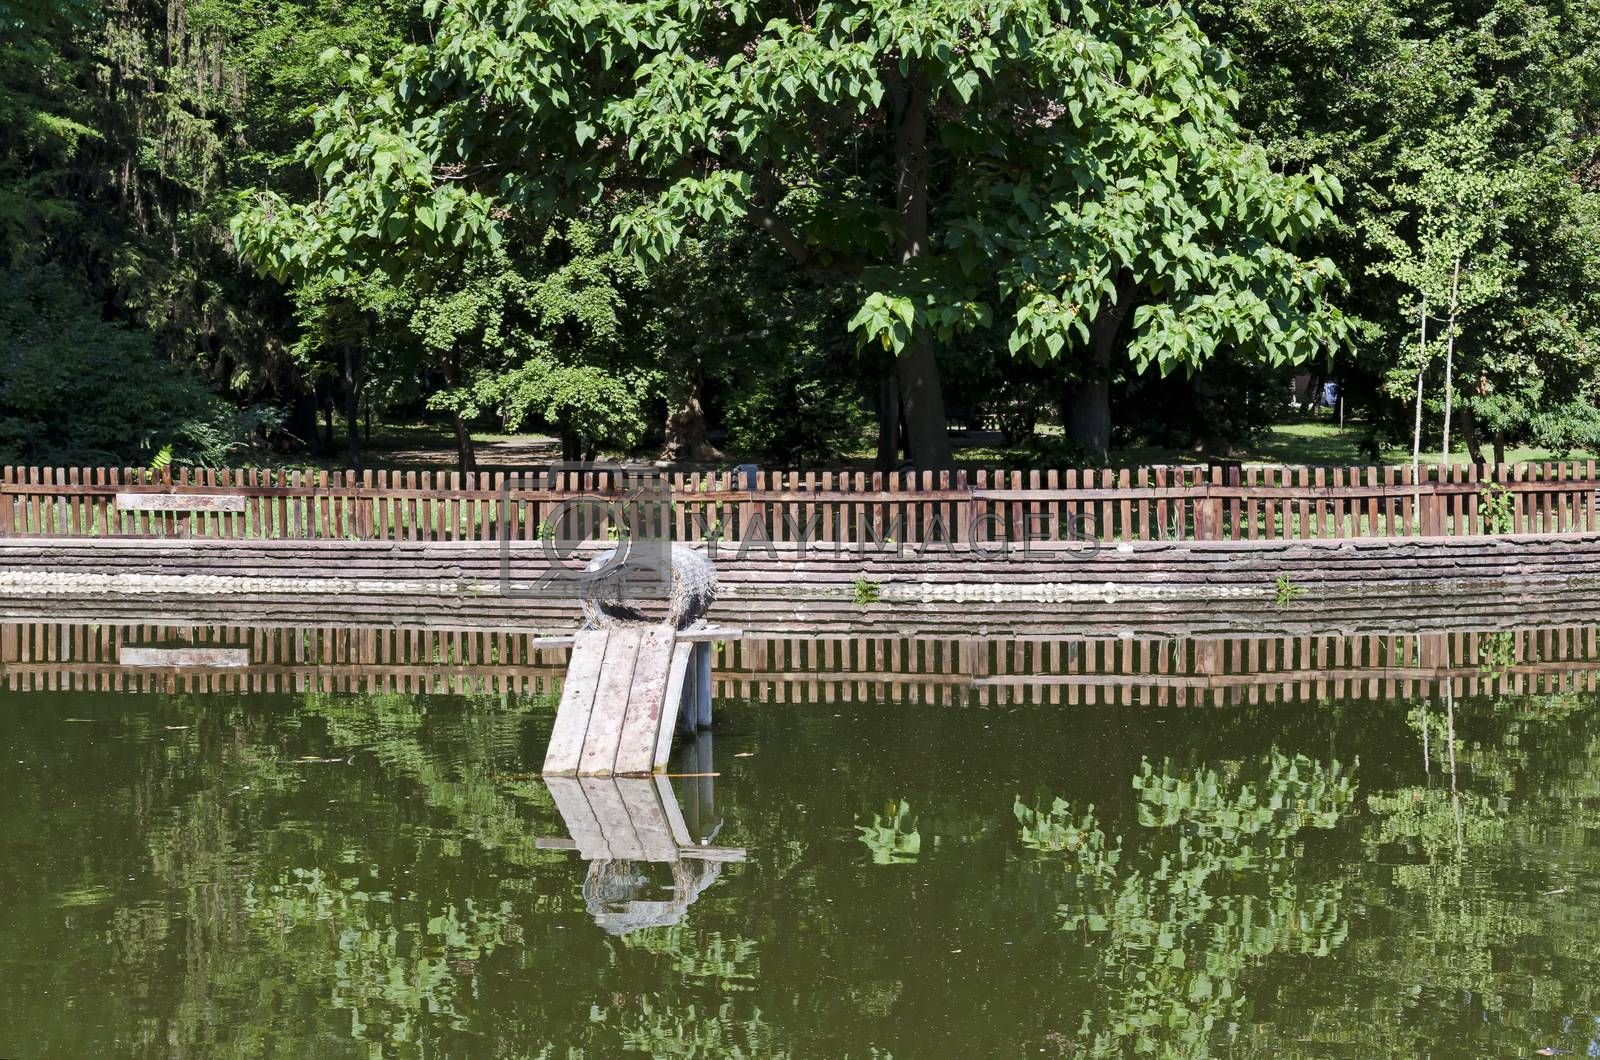 A nesting place for ducks built into the lake in the city garden, Sofia, Bulgaria